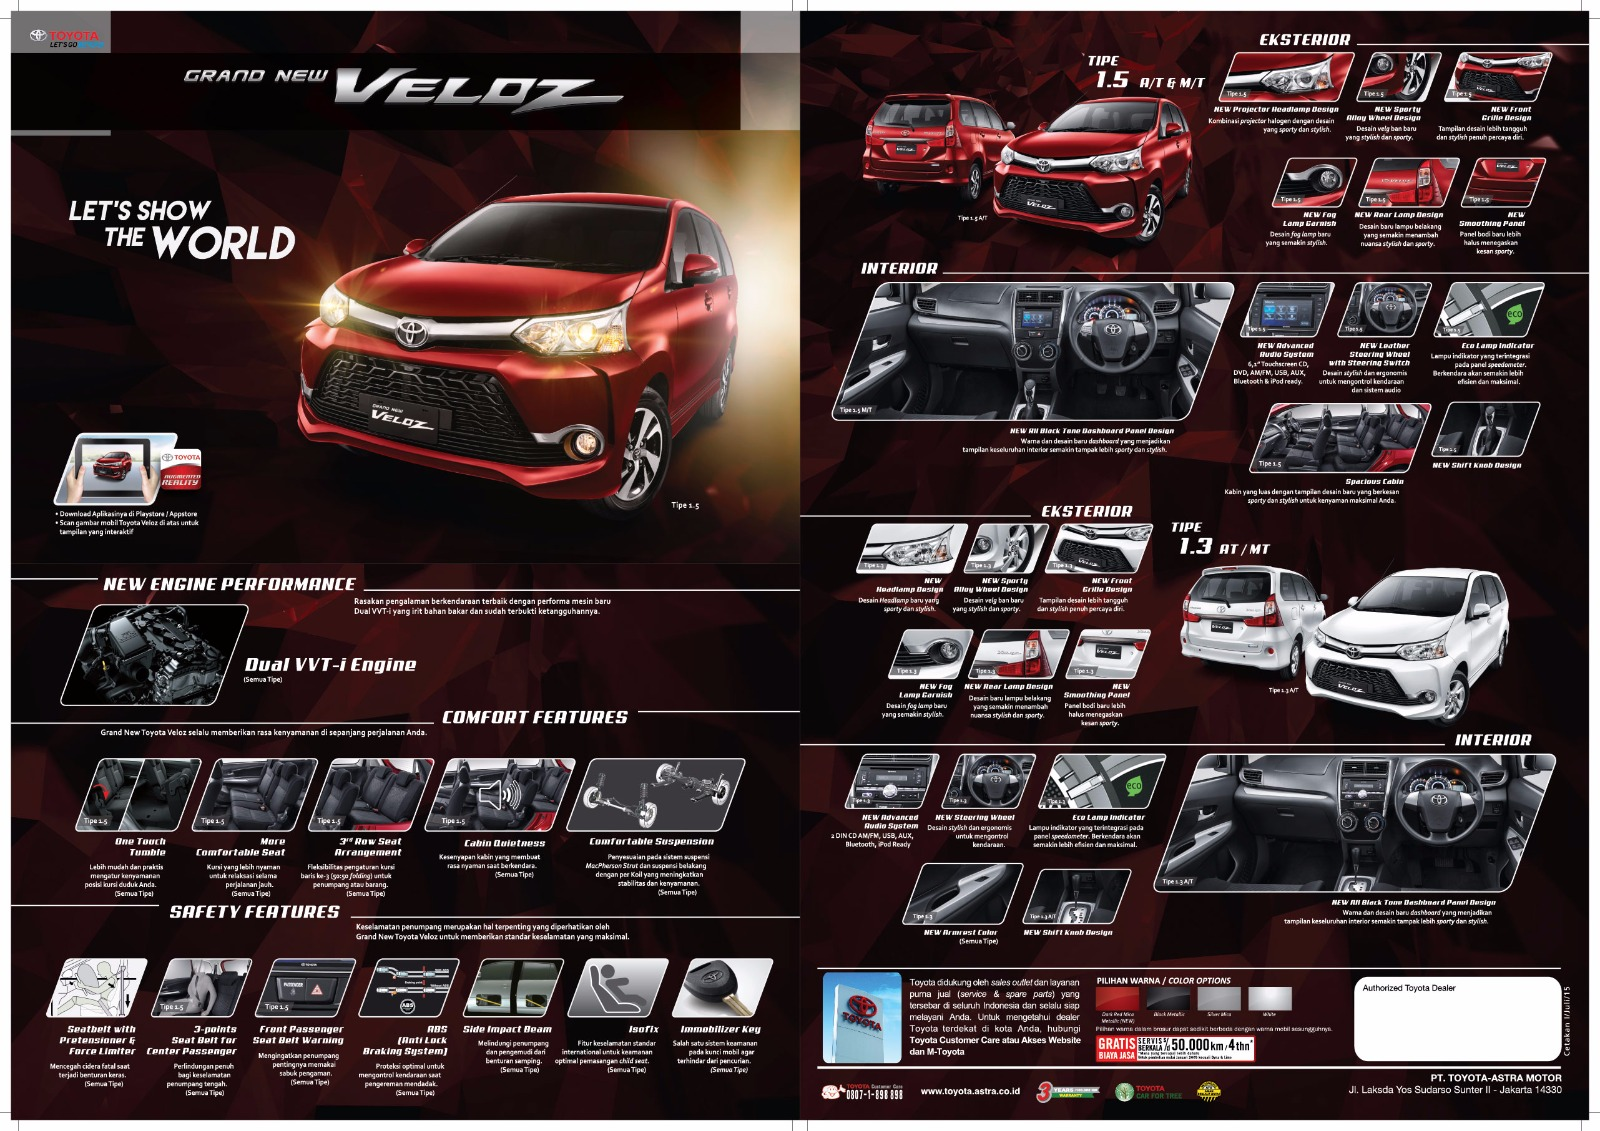 harga grand new avanza di makassar modifikasi 2018 termurah dealer anzon toyota pontianak kalimantan